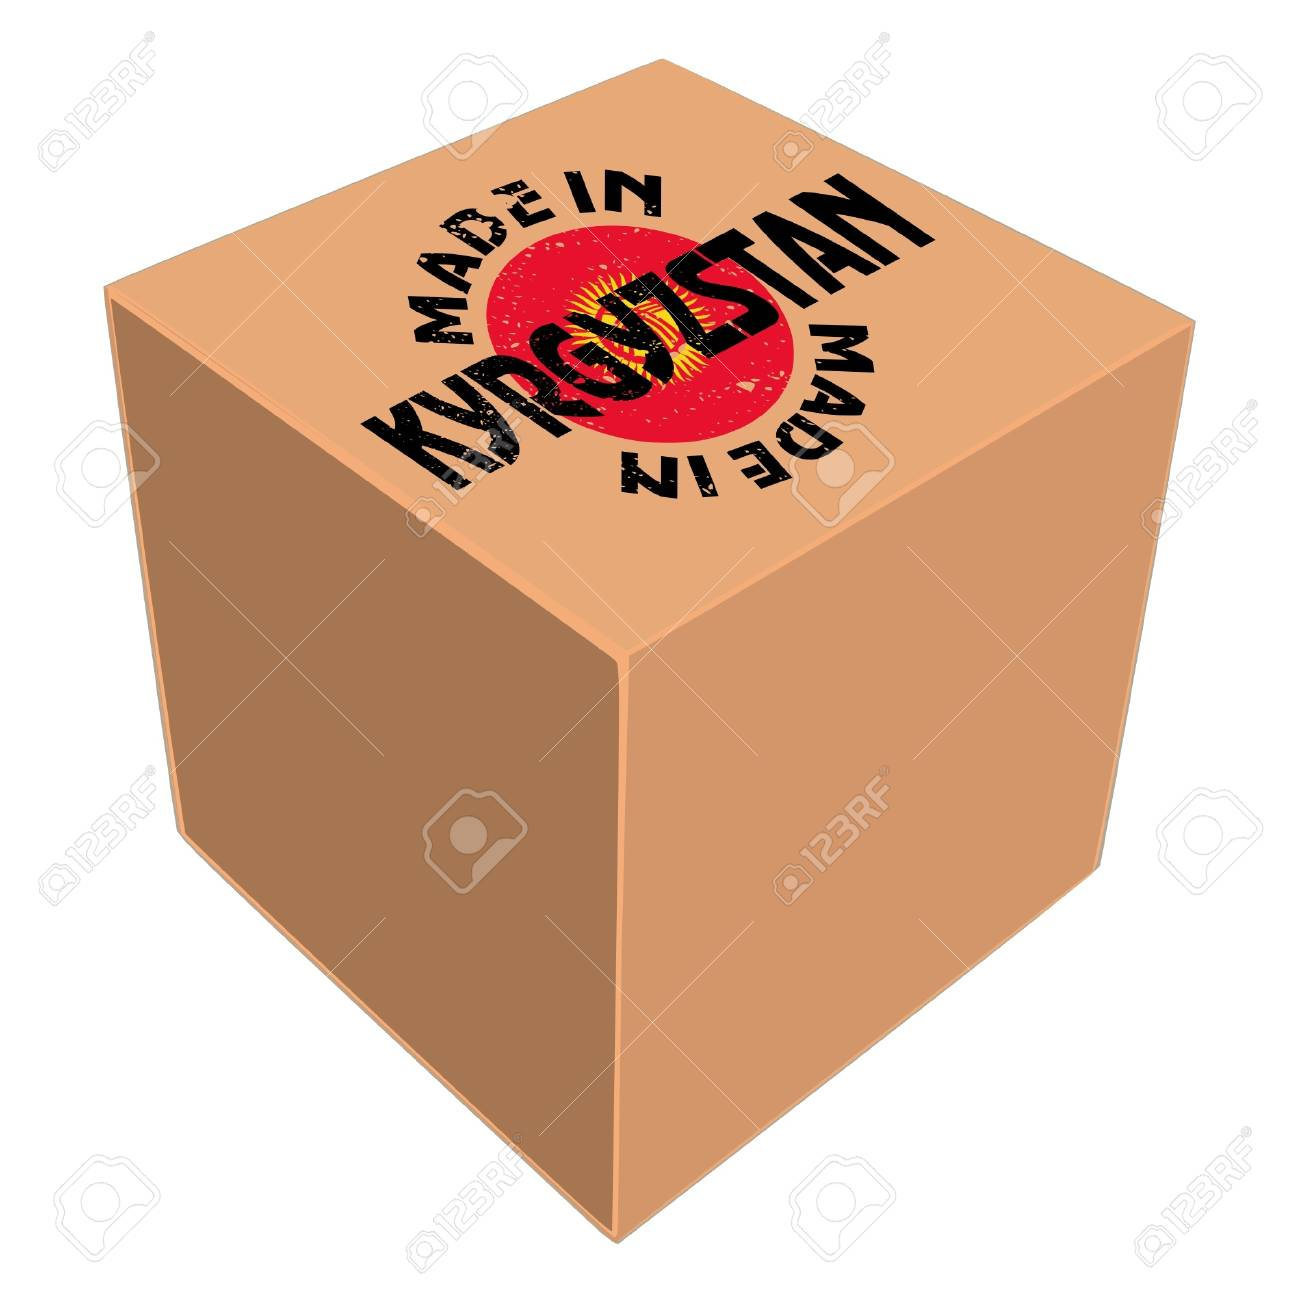 Made in Kyrgyzstan Stock Vector - 11934122